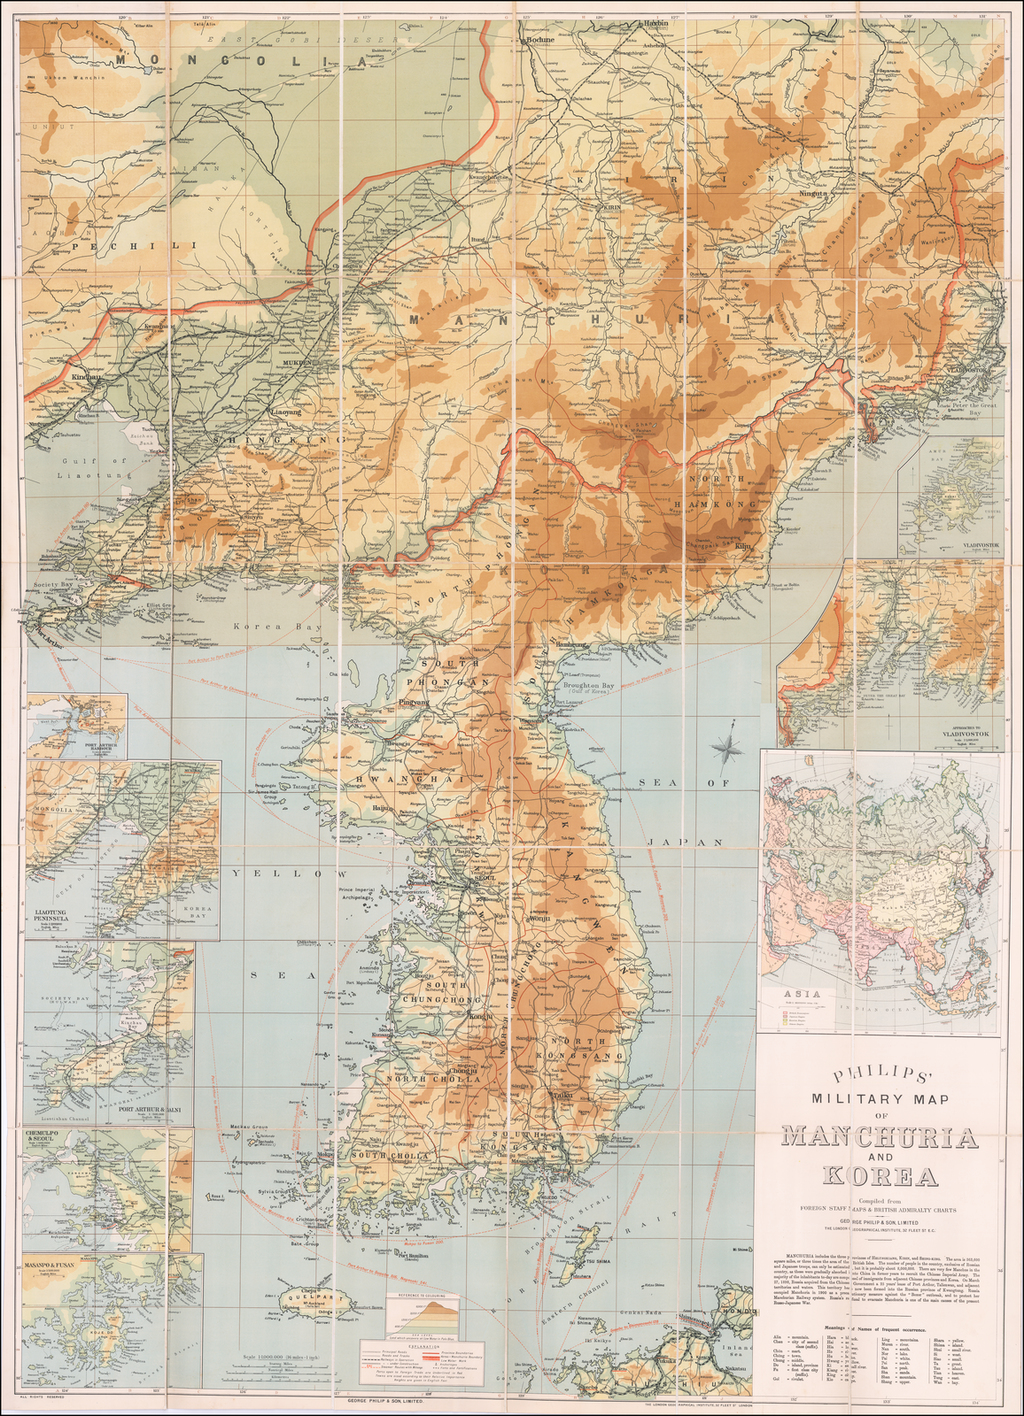 Philips' Military Map of Manchuria and Korea Compiled from Foreign Staff Maps & British Admiralty Charts By George Philip & Son